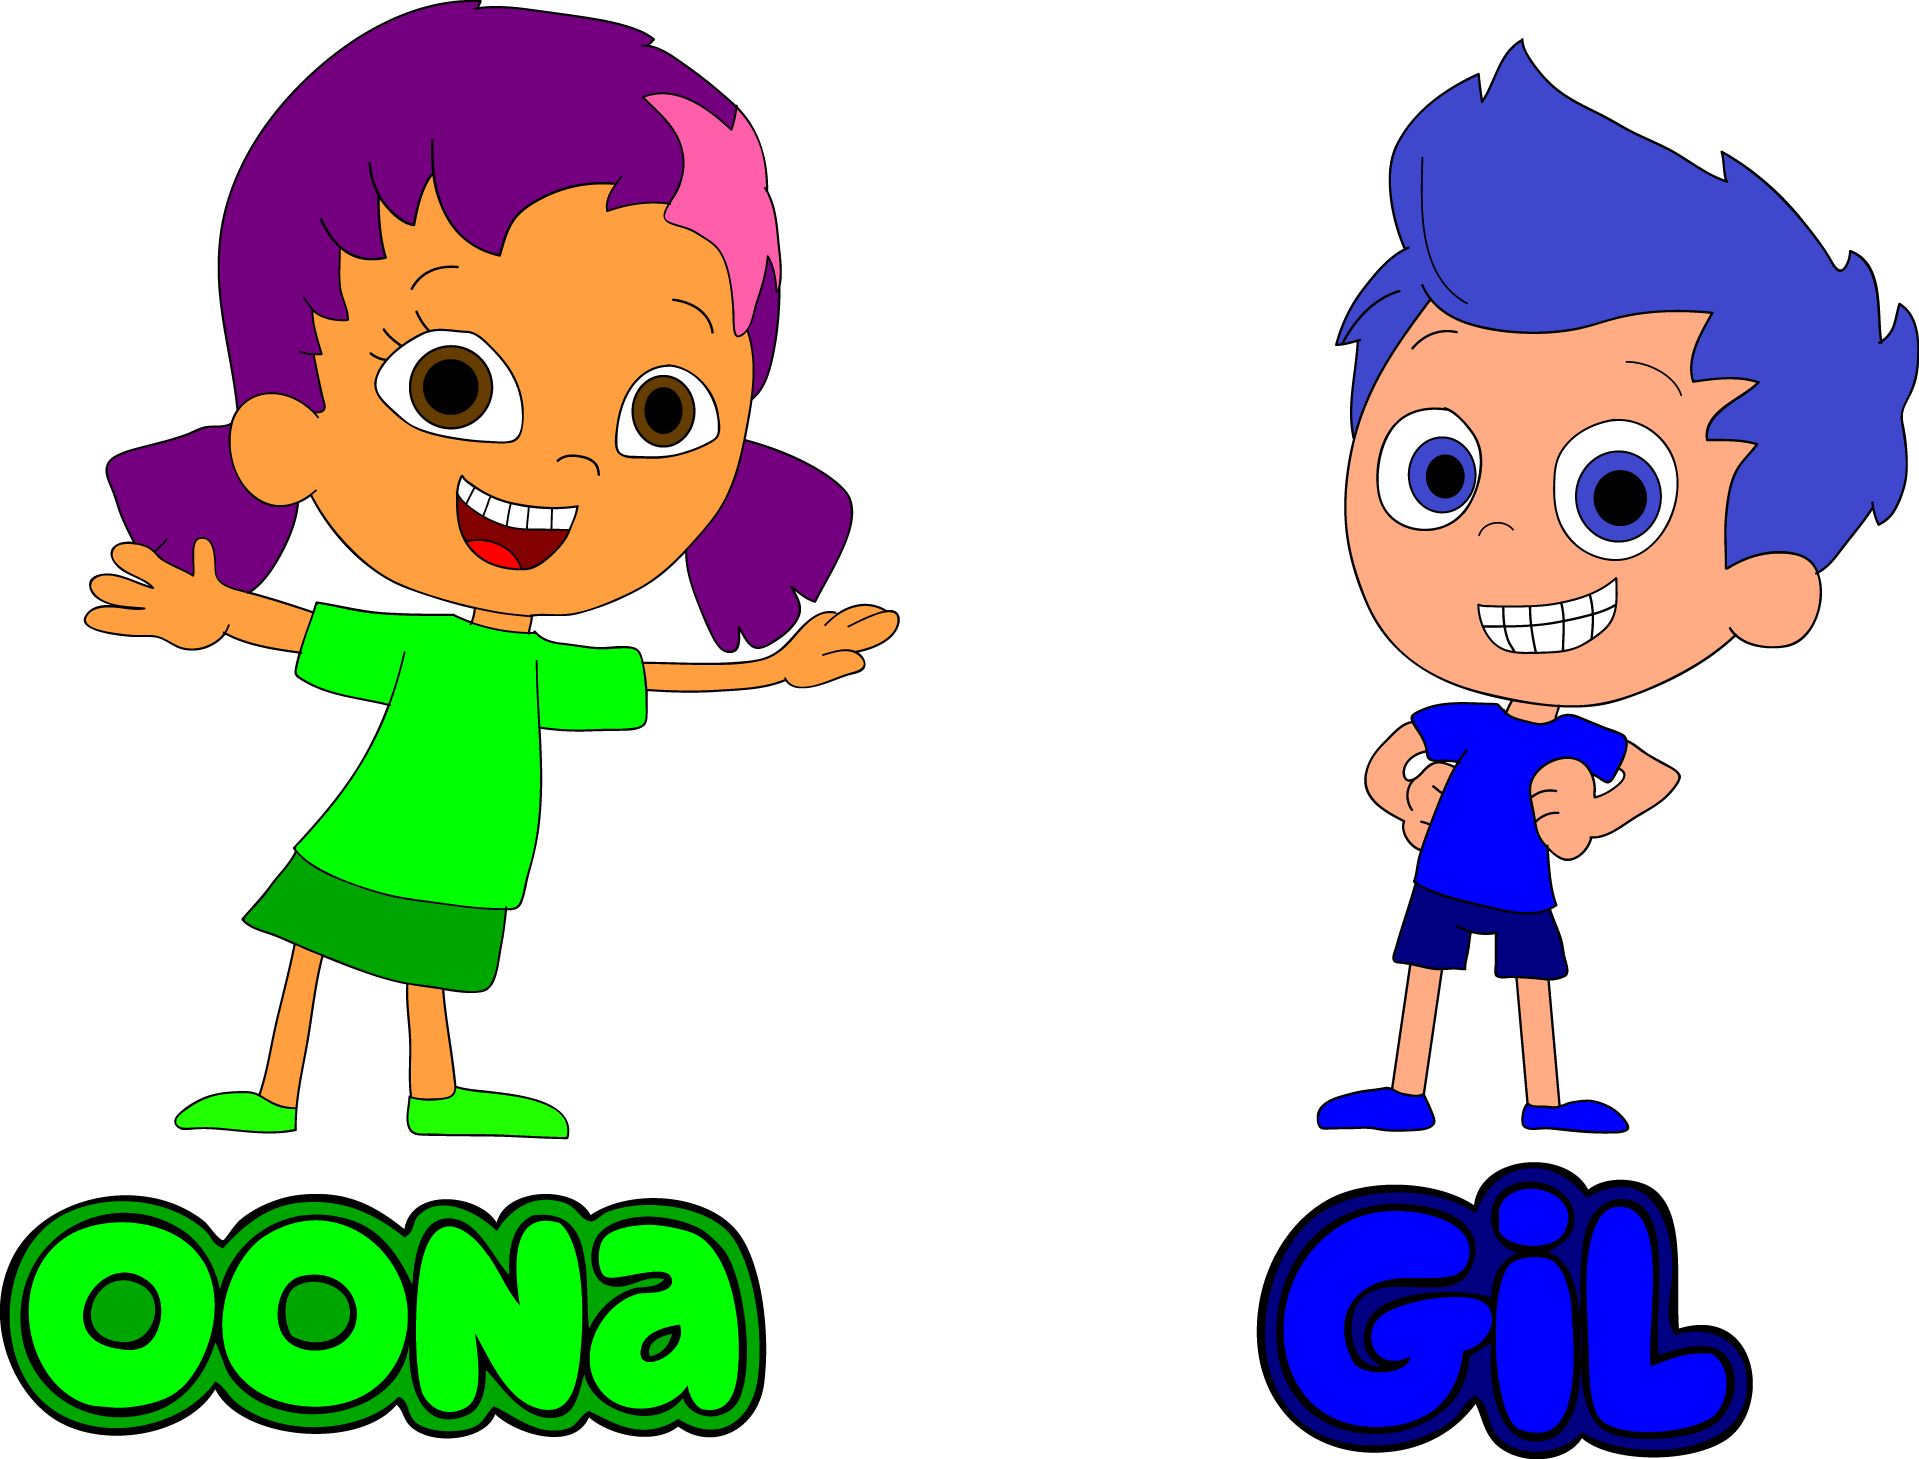 Oona and gil of bubble guppies by blueelephant7 on deviantart - Bubulles guppies ...